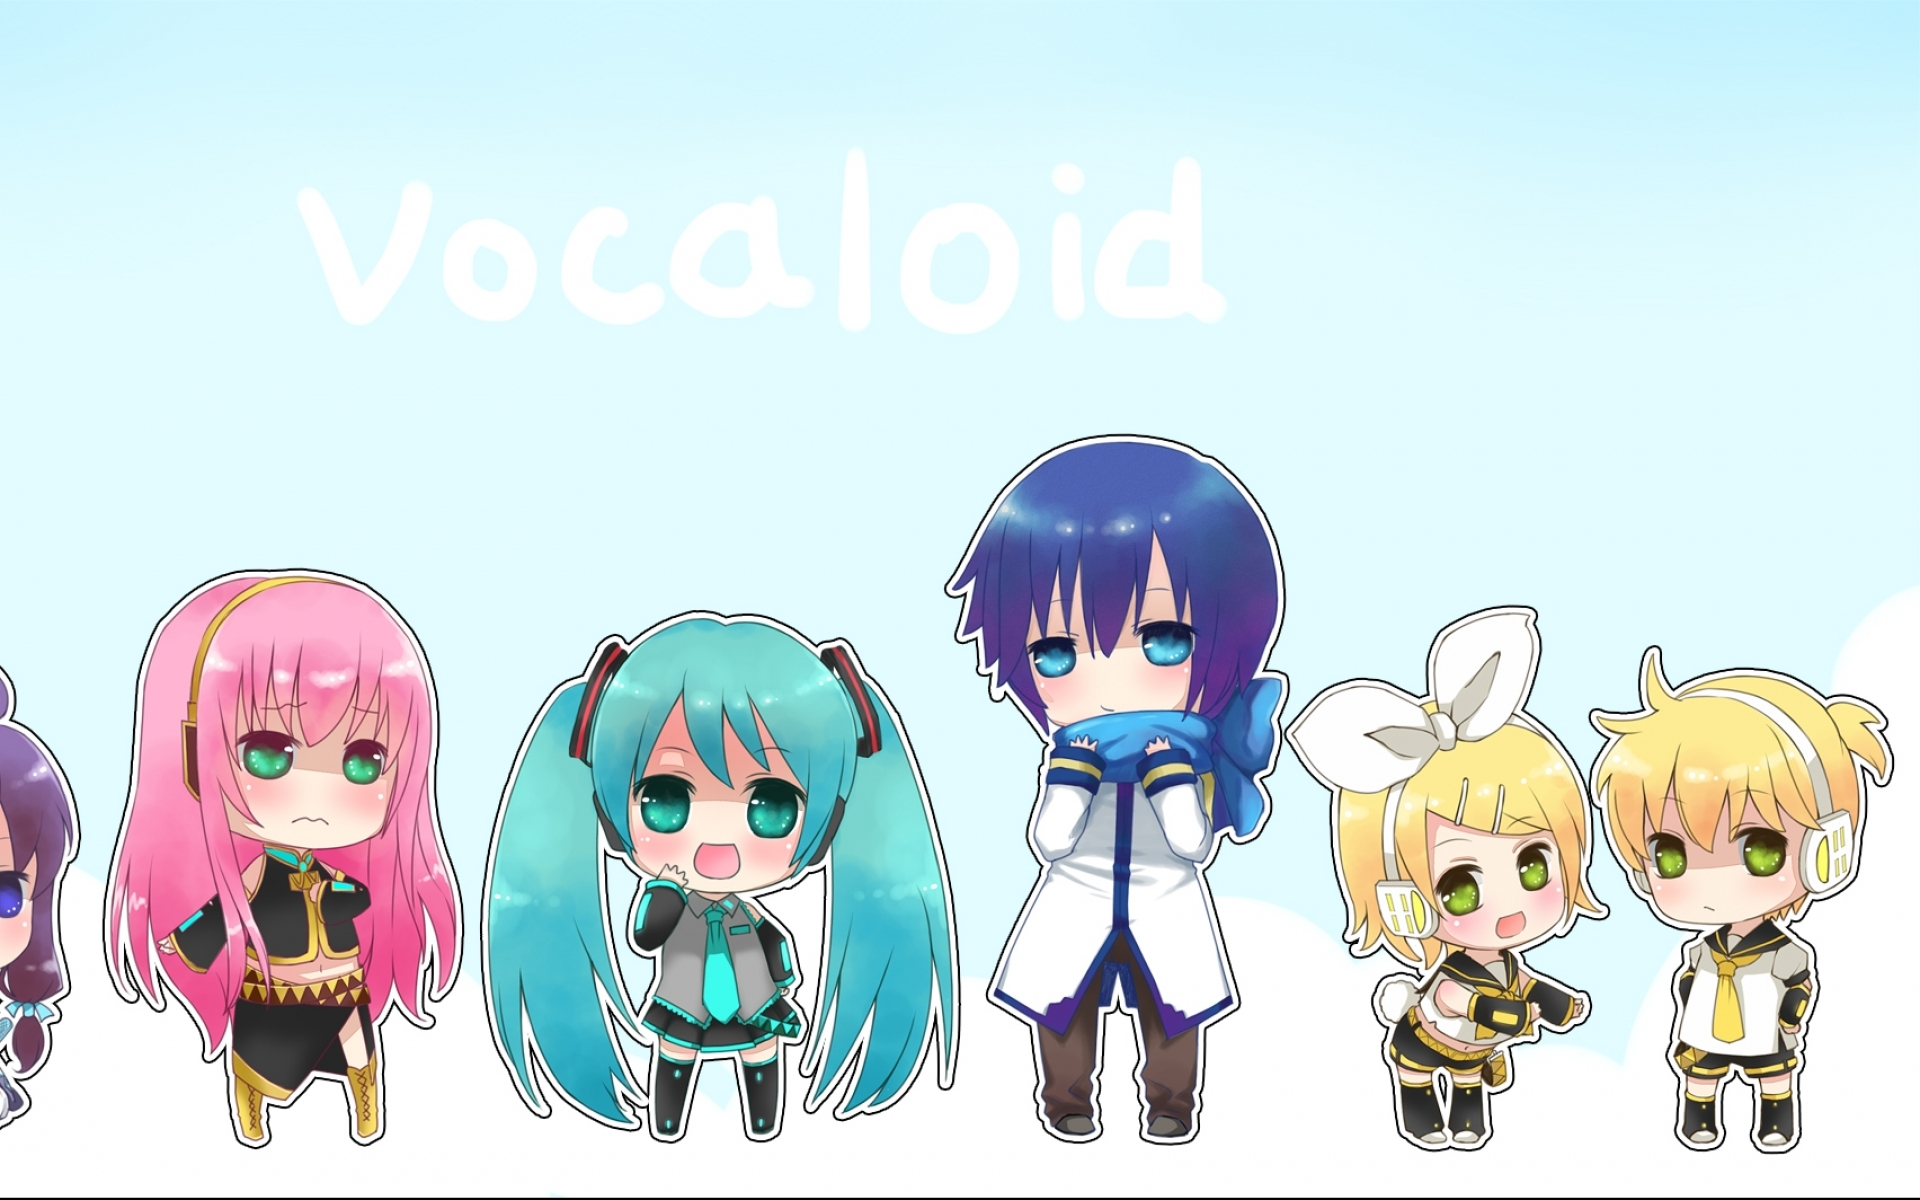 Chibi Group Wallpapers Backgrounds Animejpg 1920x1200